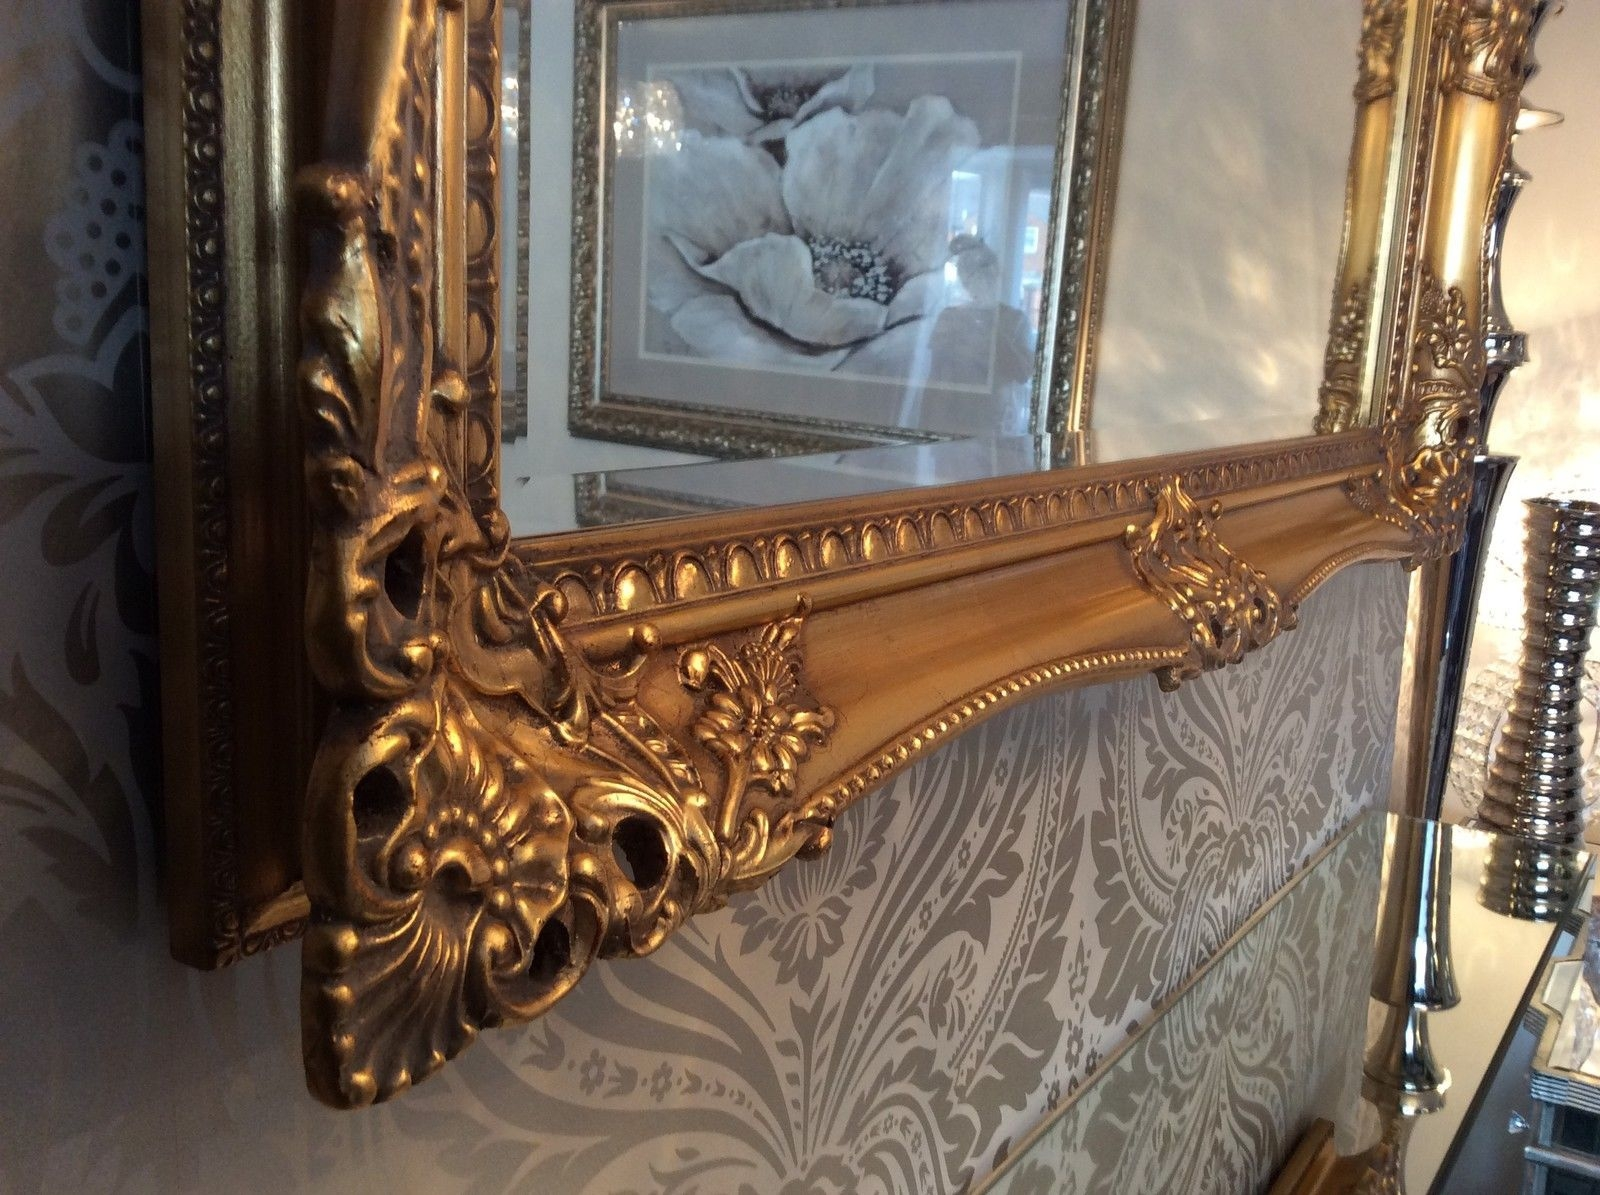 Antique Wall Mirrors Decorative Inarace Within Antique Gold Mirrors Large (Image 5 of 15)